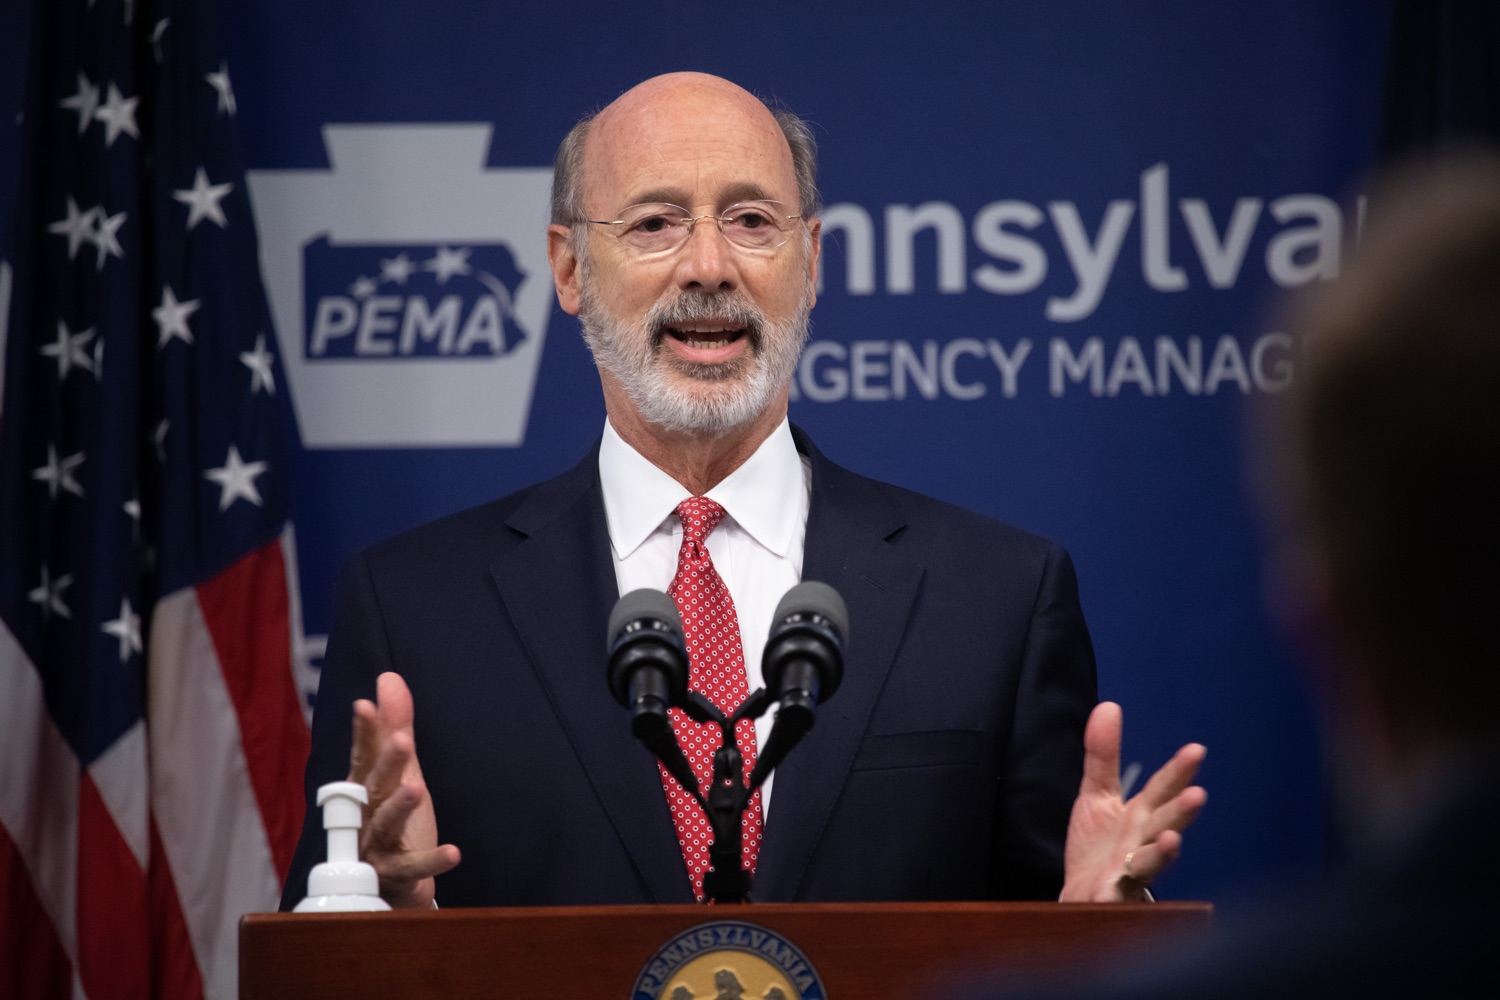 "<a href=""https://filesource.wostreaming.net/commonwealthofpa/photo/18091_gov_covid_update_dz_08.jpg"" target=""_blank"">⇣ Download Photo<br></a>Pennsylvania Governor Tom Wolf answering questions from the press.  As states across the country begin to reopen and nearly half are seeing COVID-19 cases rise, Governor Tom Wolf announced Friday that Pennsylvania is not one of them. ...Today at a daily COVID briefing with Health Secretary Dr. Rachel Levine, he noted another milestone: The Centers for Disease Control and Prevention proprietary data for states indicates that we are one of just three states that has had a downward trajectory of COVID- 19 cases for more than 42 days. The other two states are Montana and Hawaii.  JUNE 17, 2020 - HARRISBURG, PA."